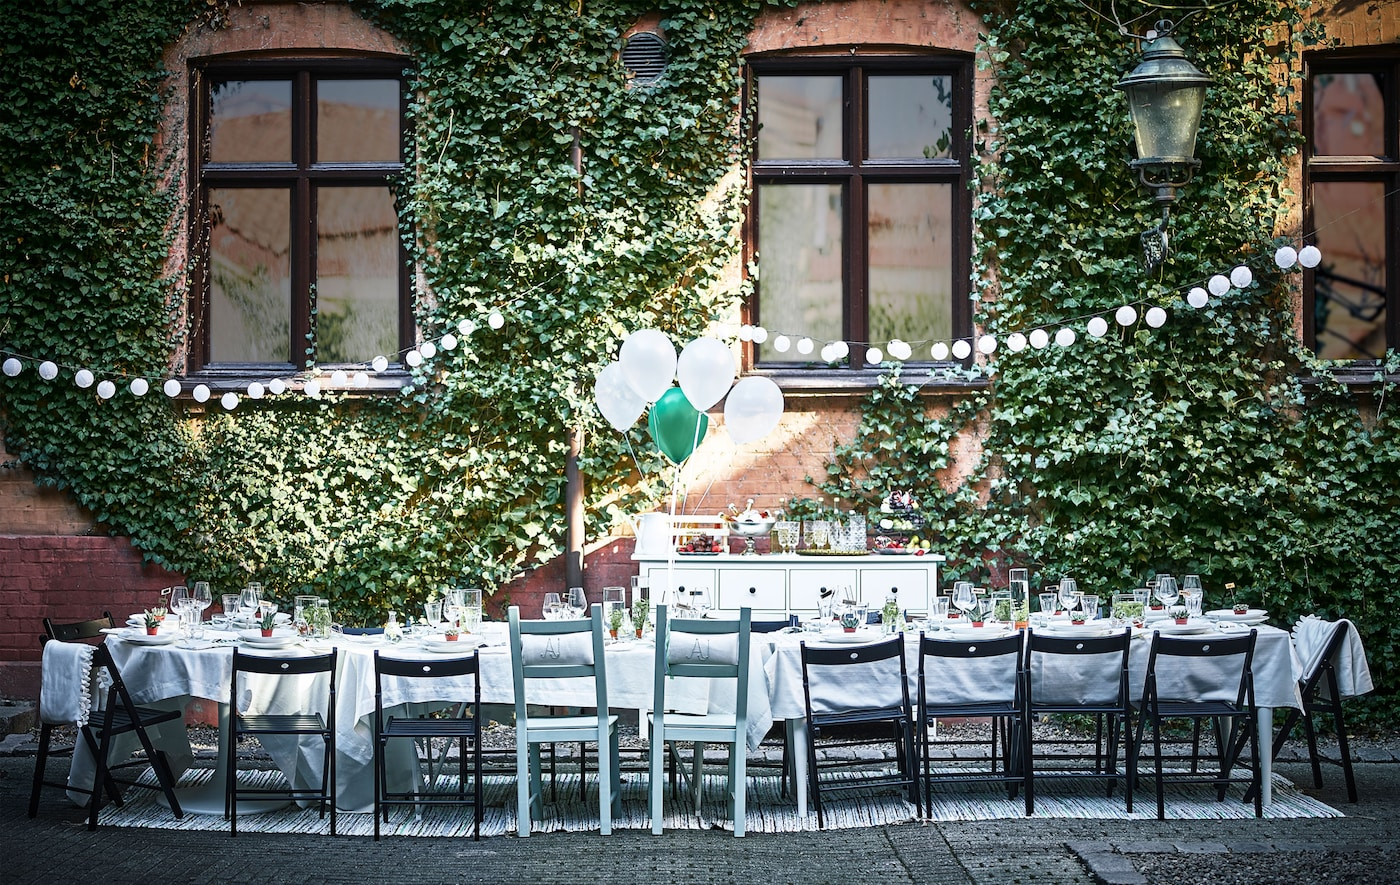 A dining table for a wedding is set up in a courtyard.